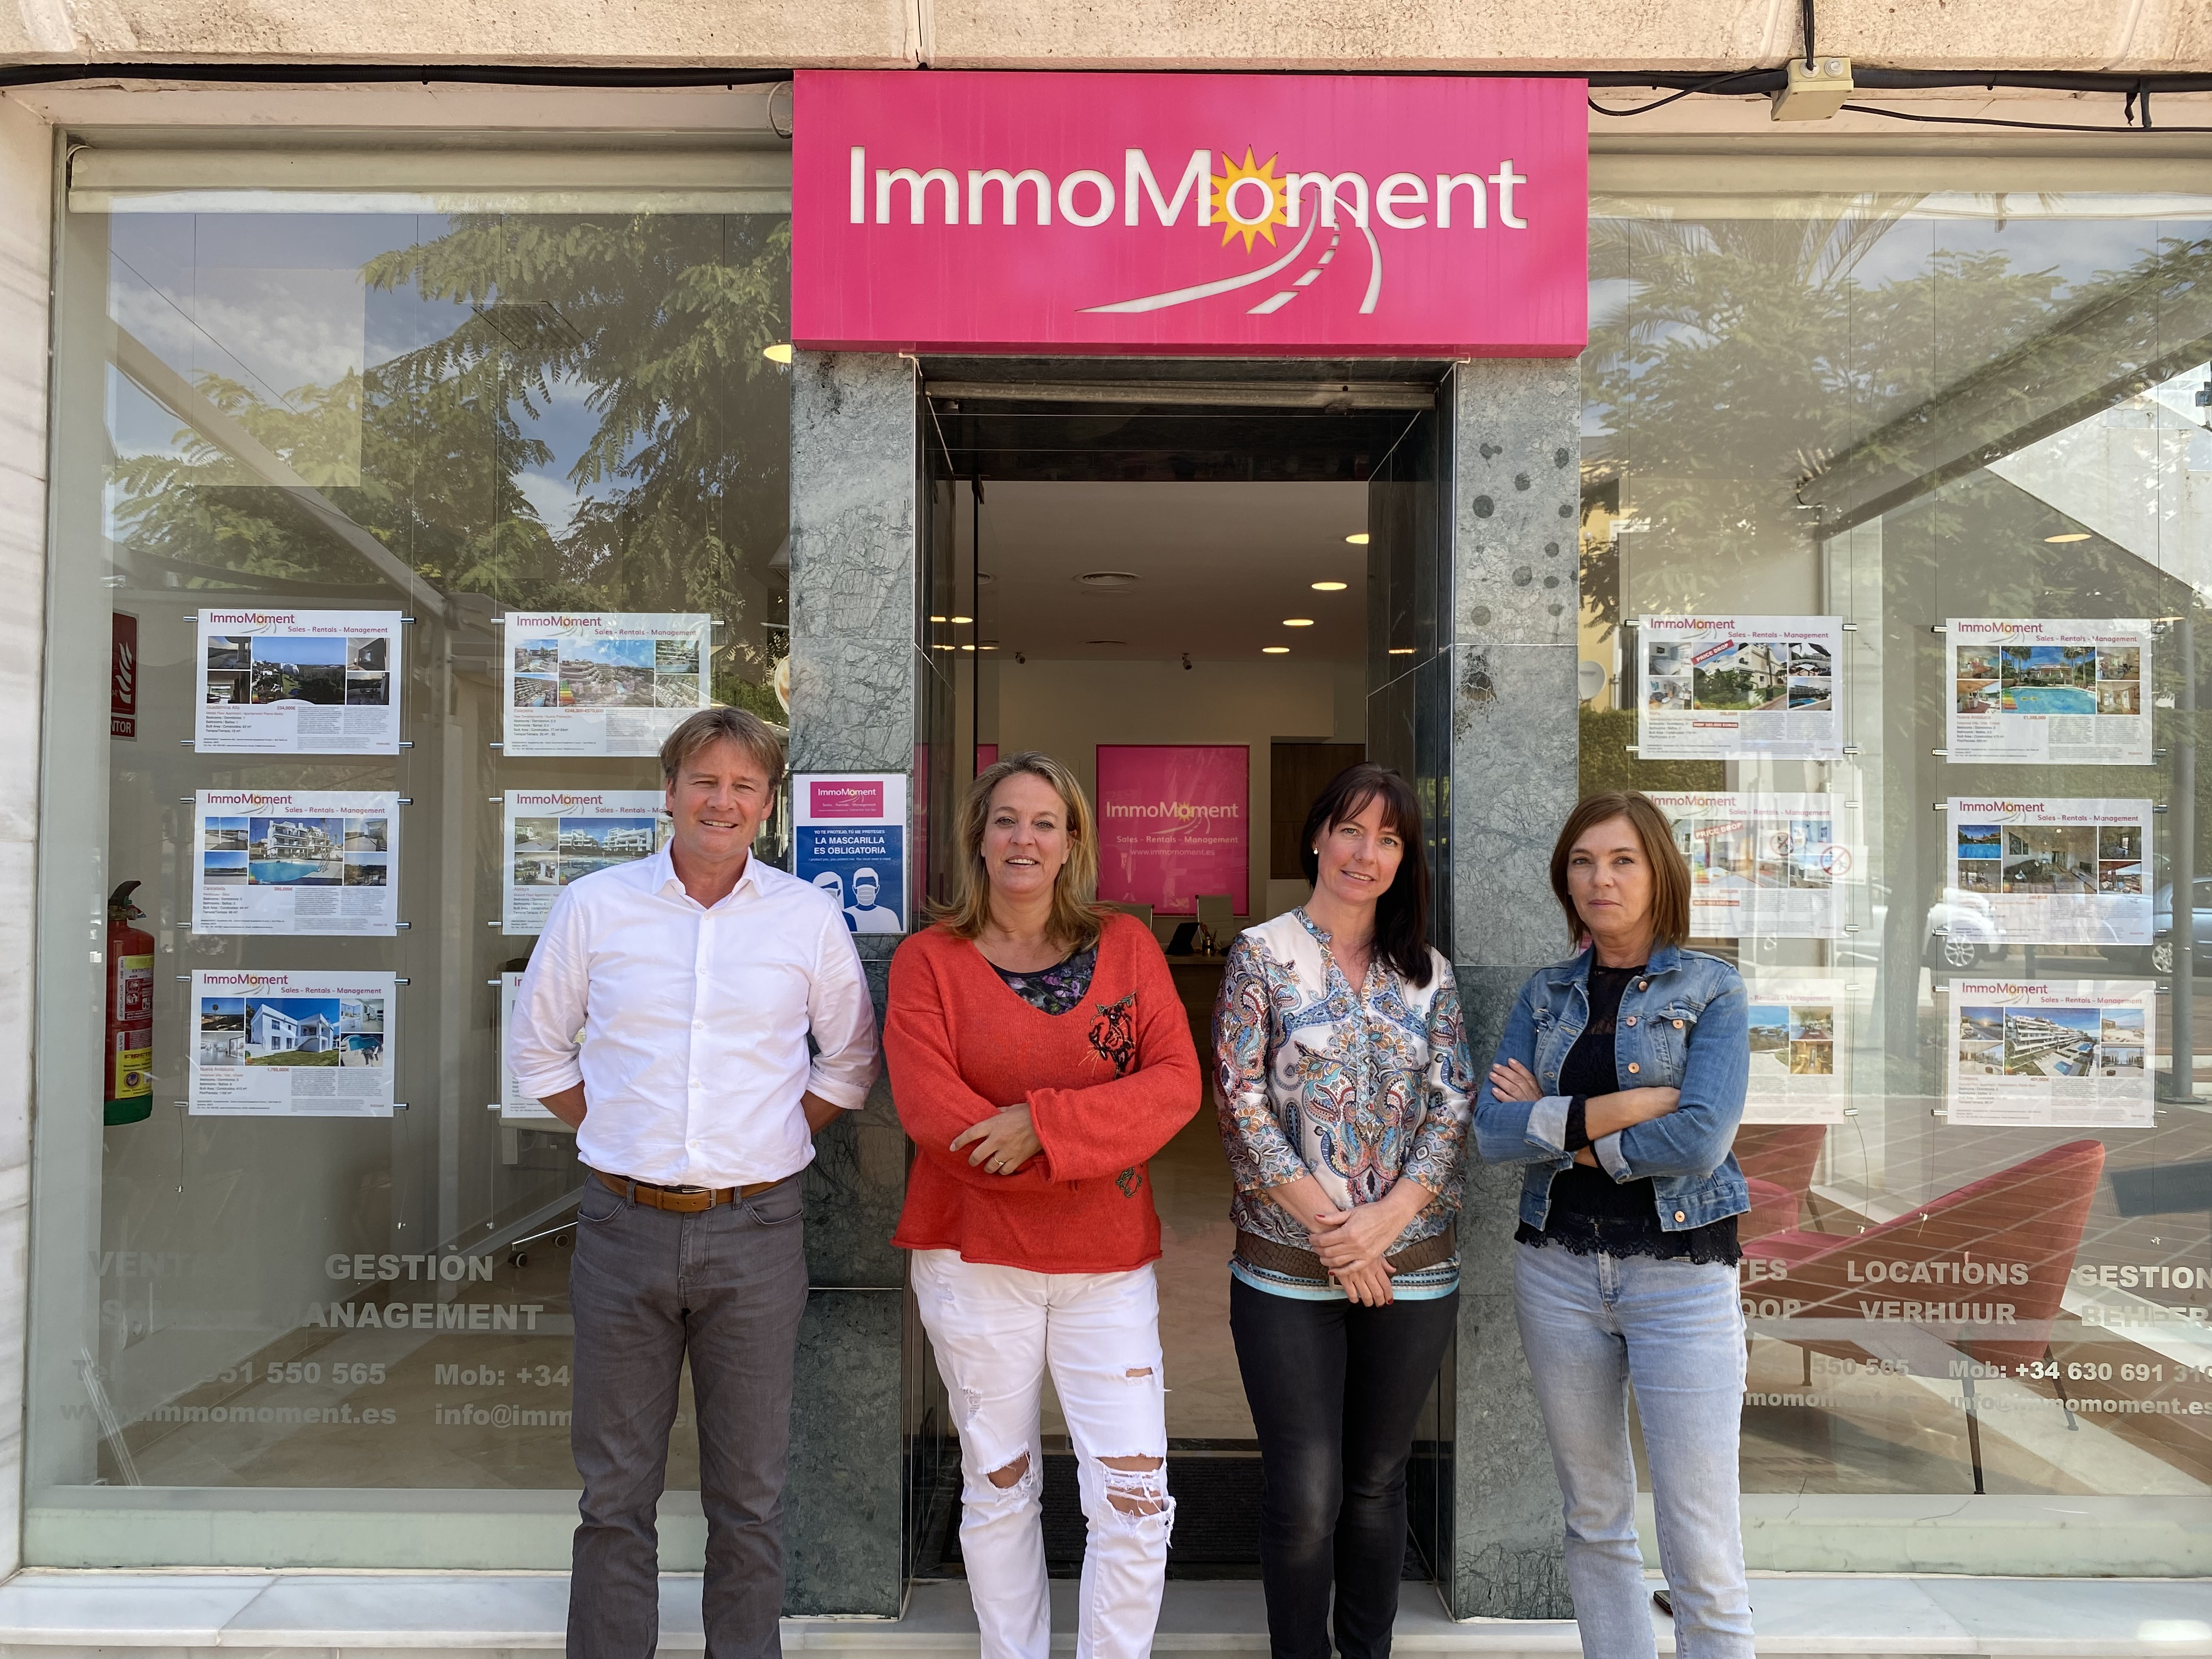 TEAM IMMO MOMENT